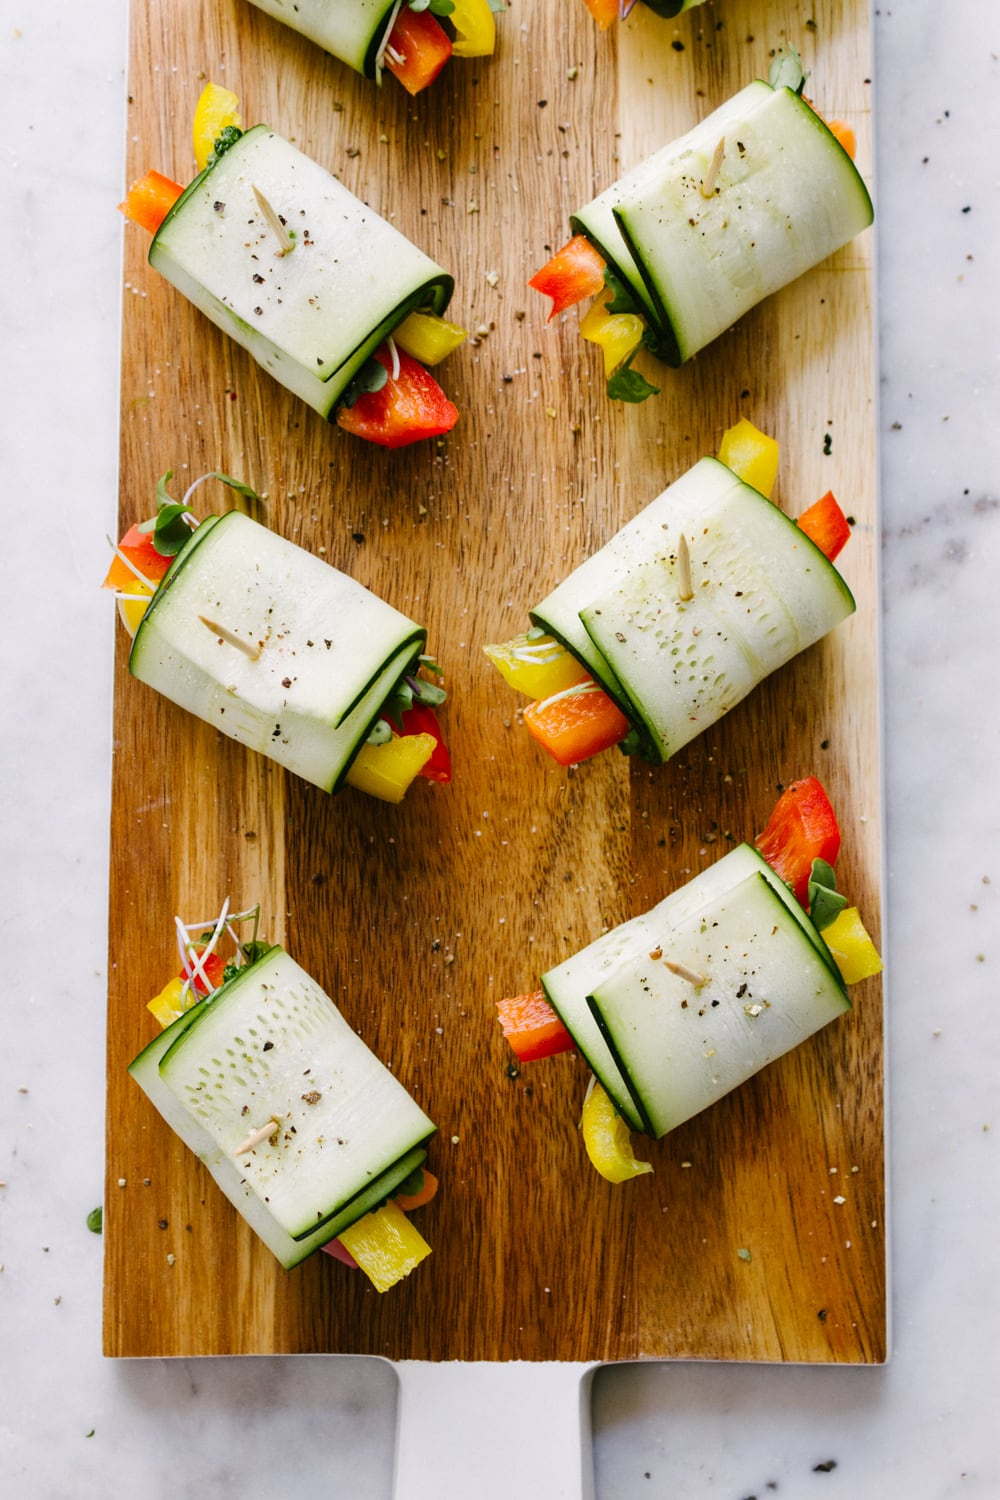 a top down view of a group of raw zucchini wraps filled with fresh bell peppers, carrots, kale pesto and micro greens freshly made and sitting on a wooden serving board